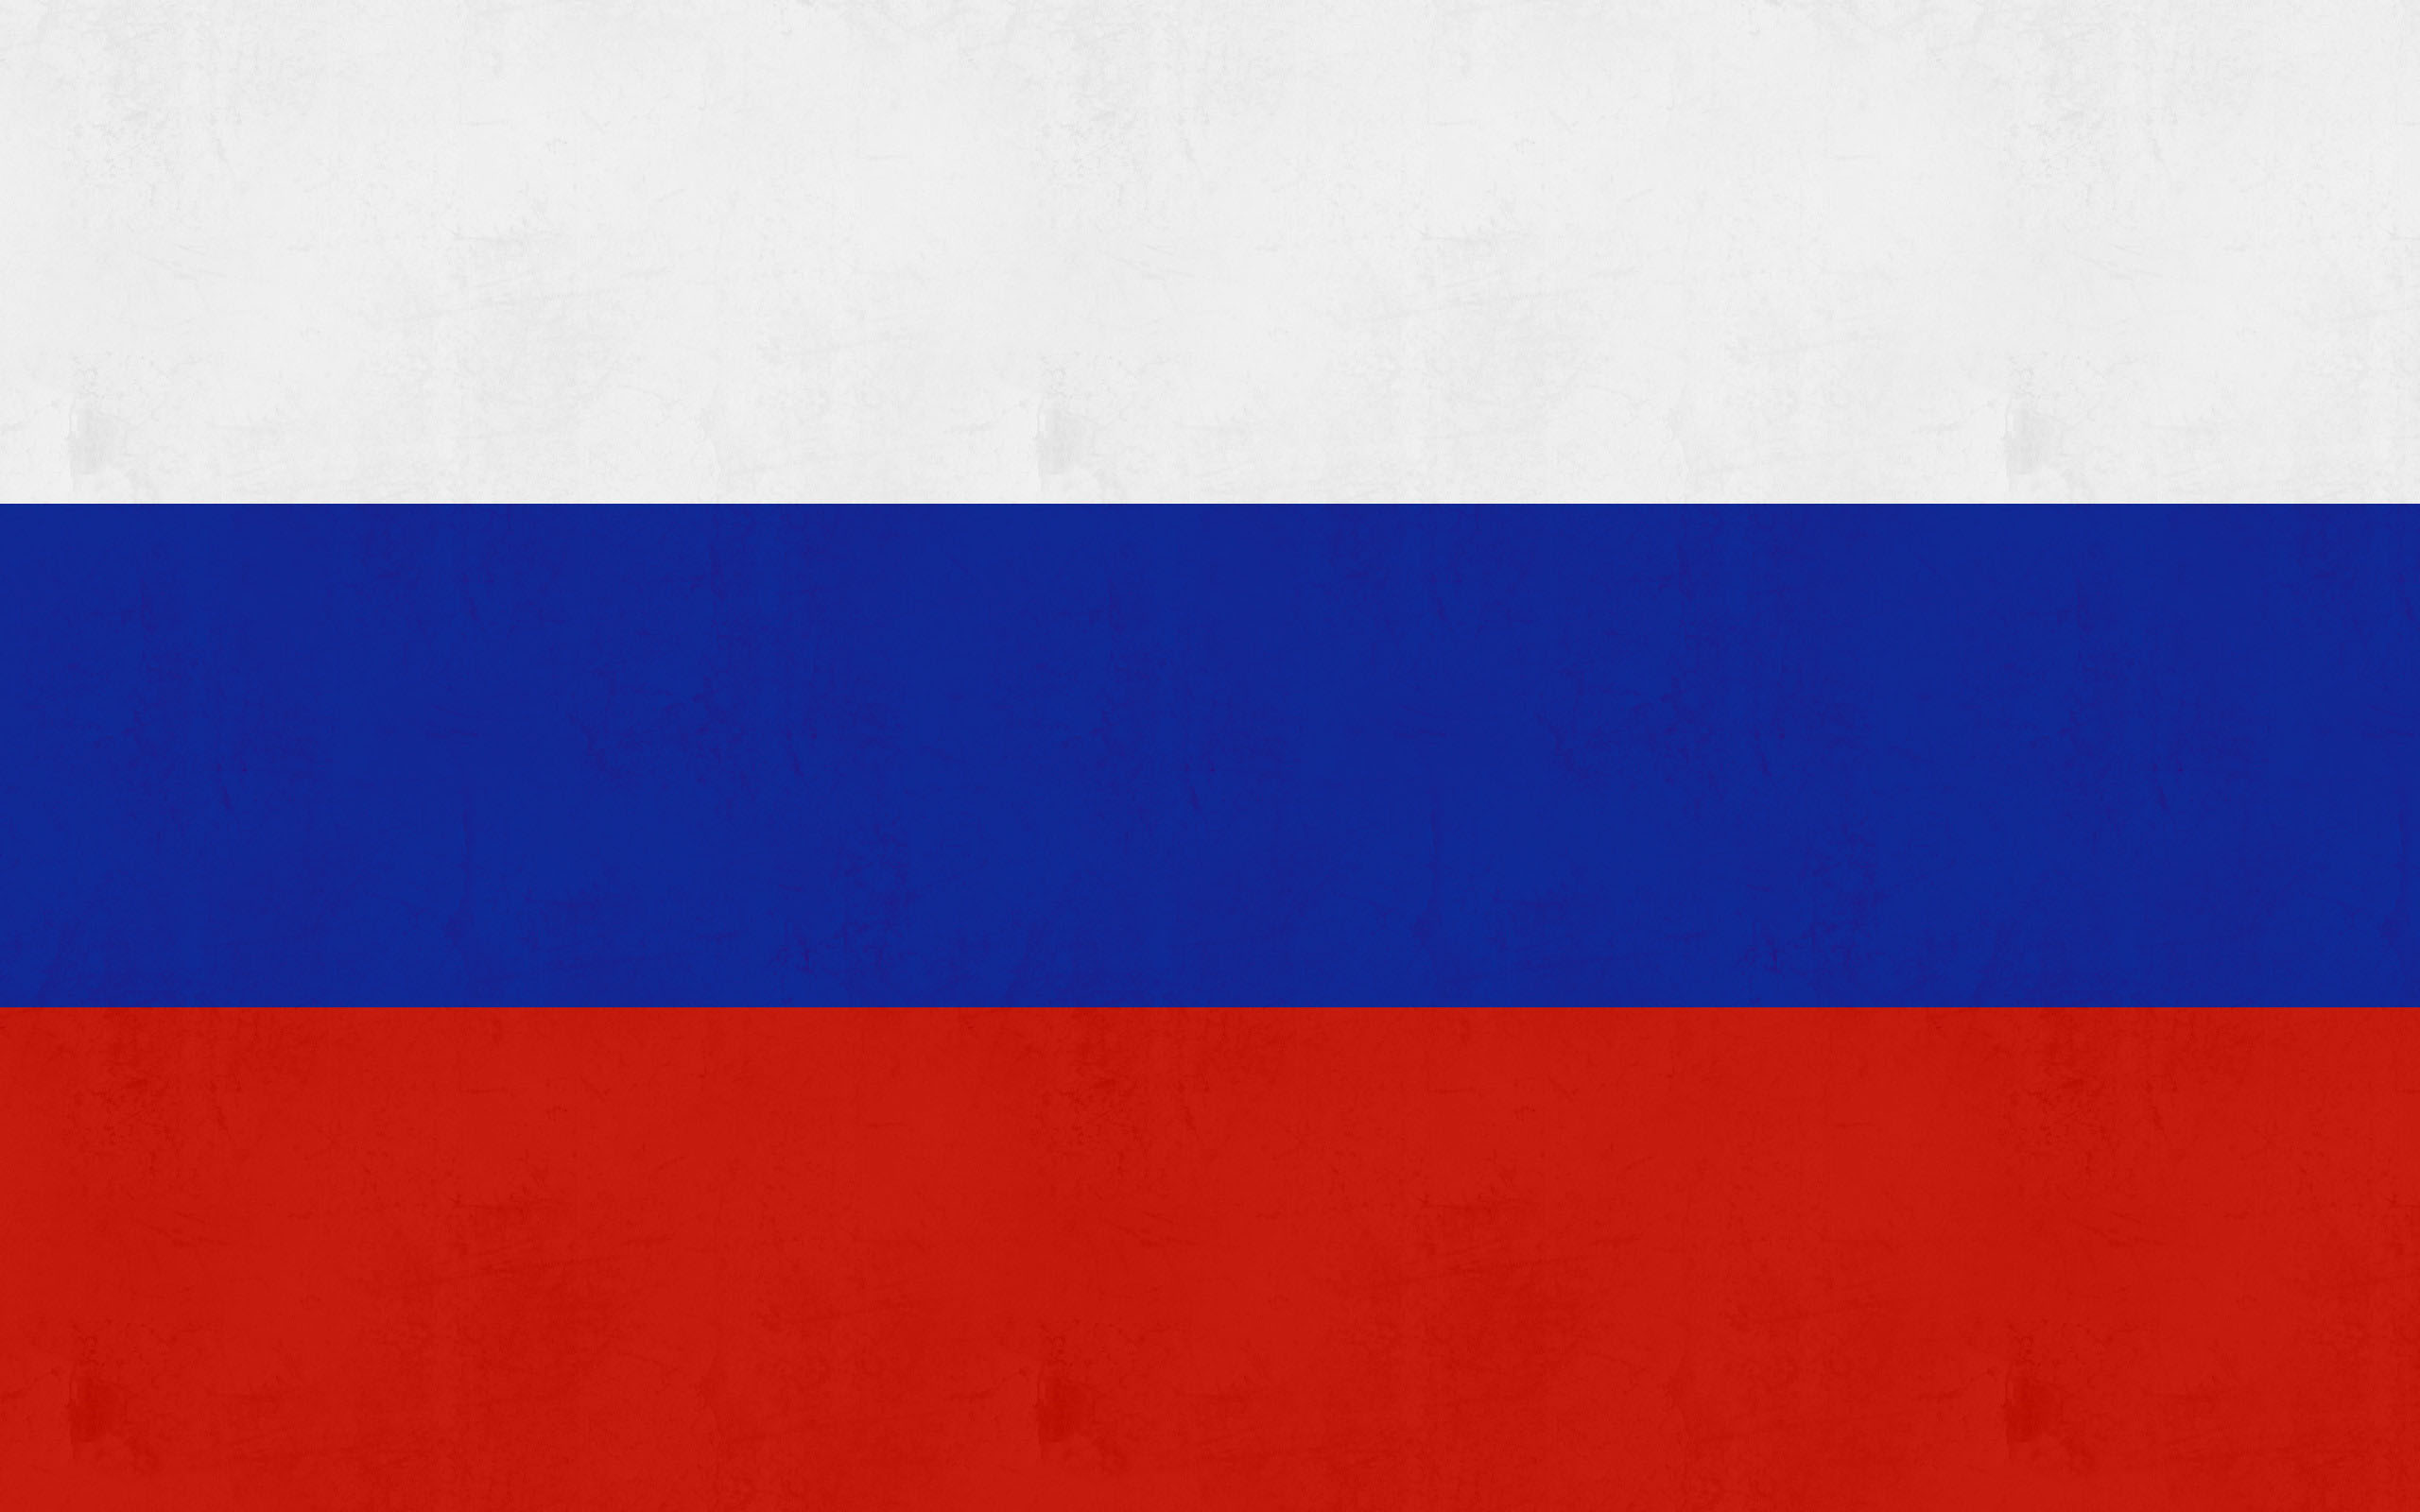 Big russian flag wallpapers for desktop daily backgrounds in hd